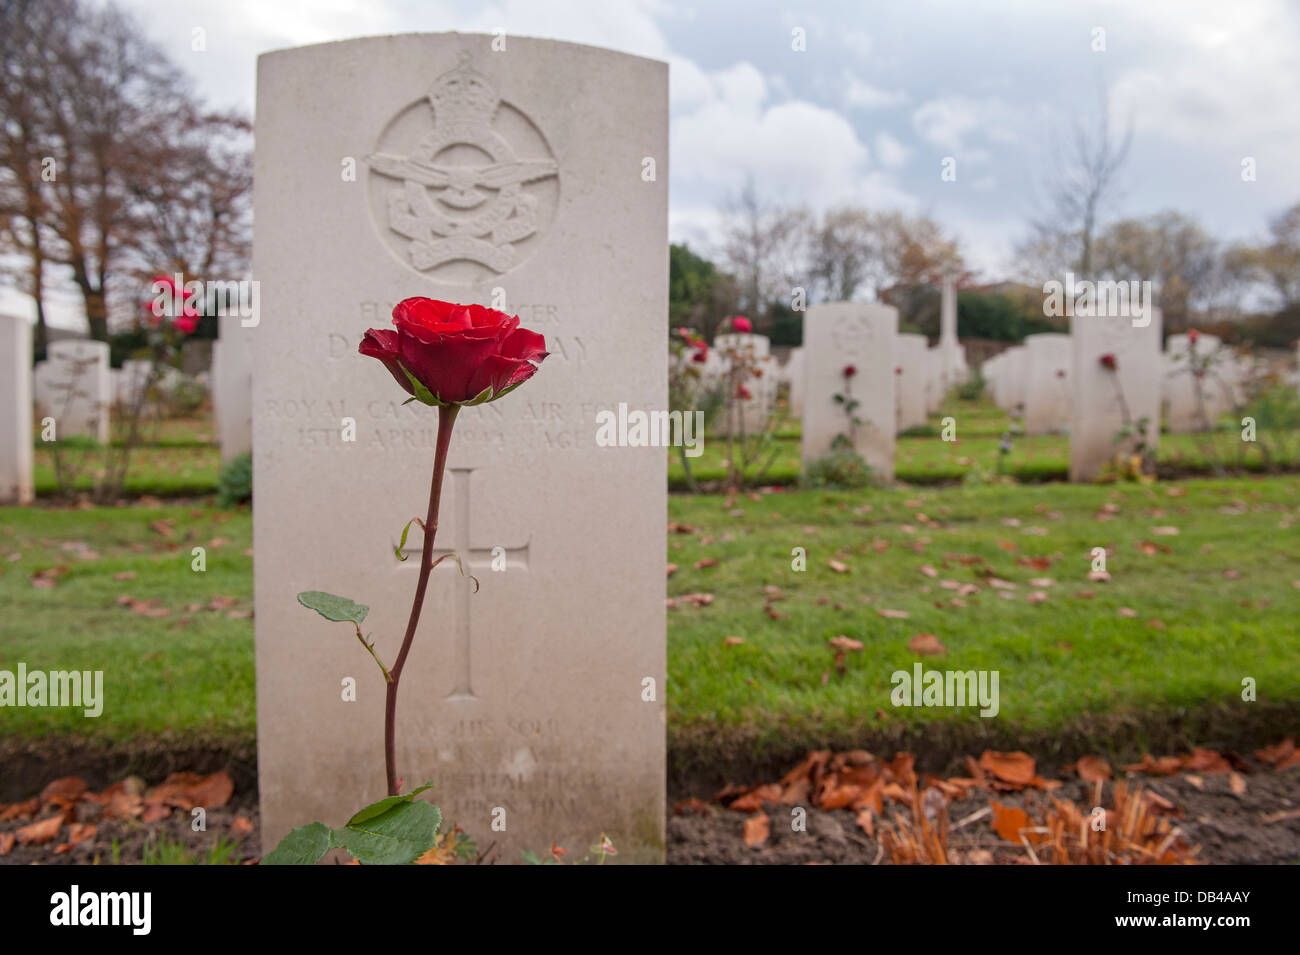 Single red rose growing in front of headstone, other memorials beyond - Commonwealth war graves at Stonefall Cemetery, Stock Photo